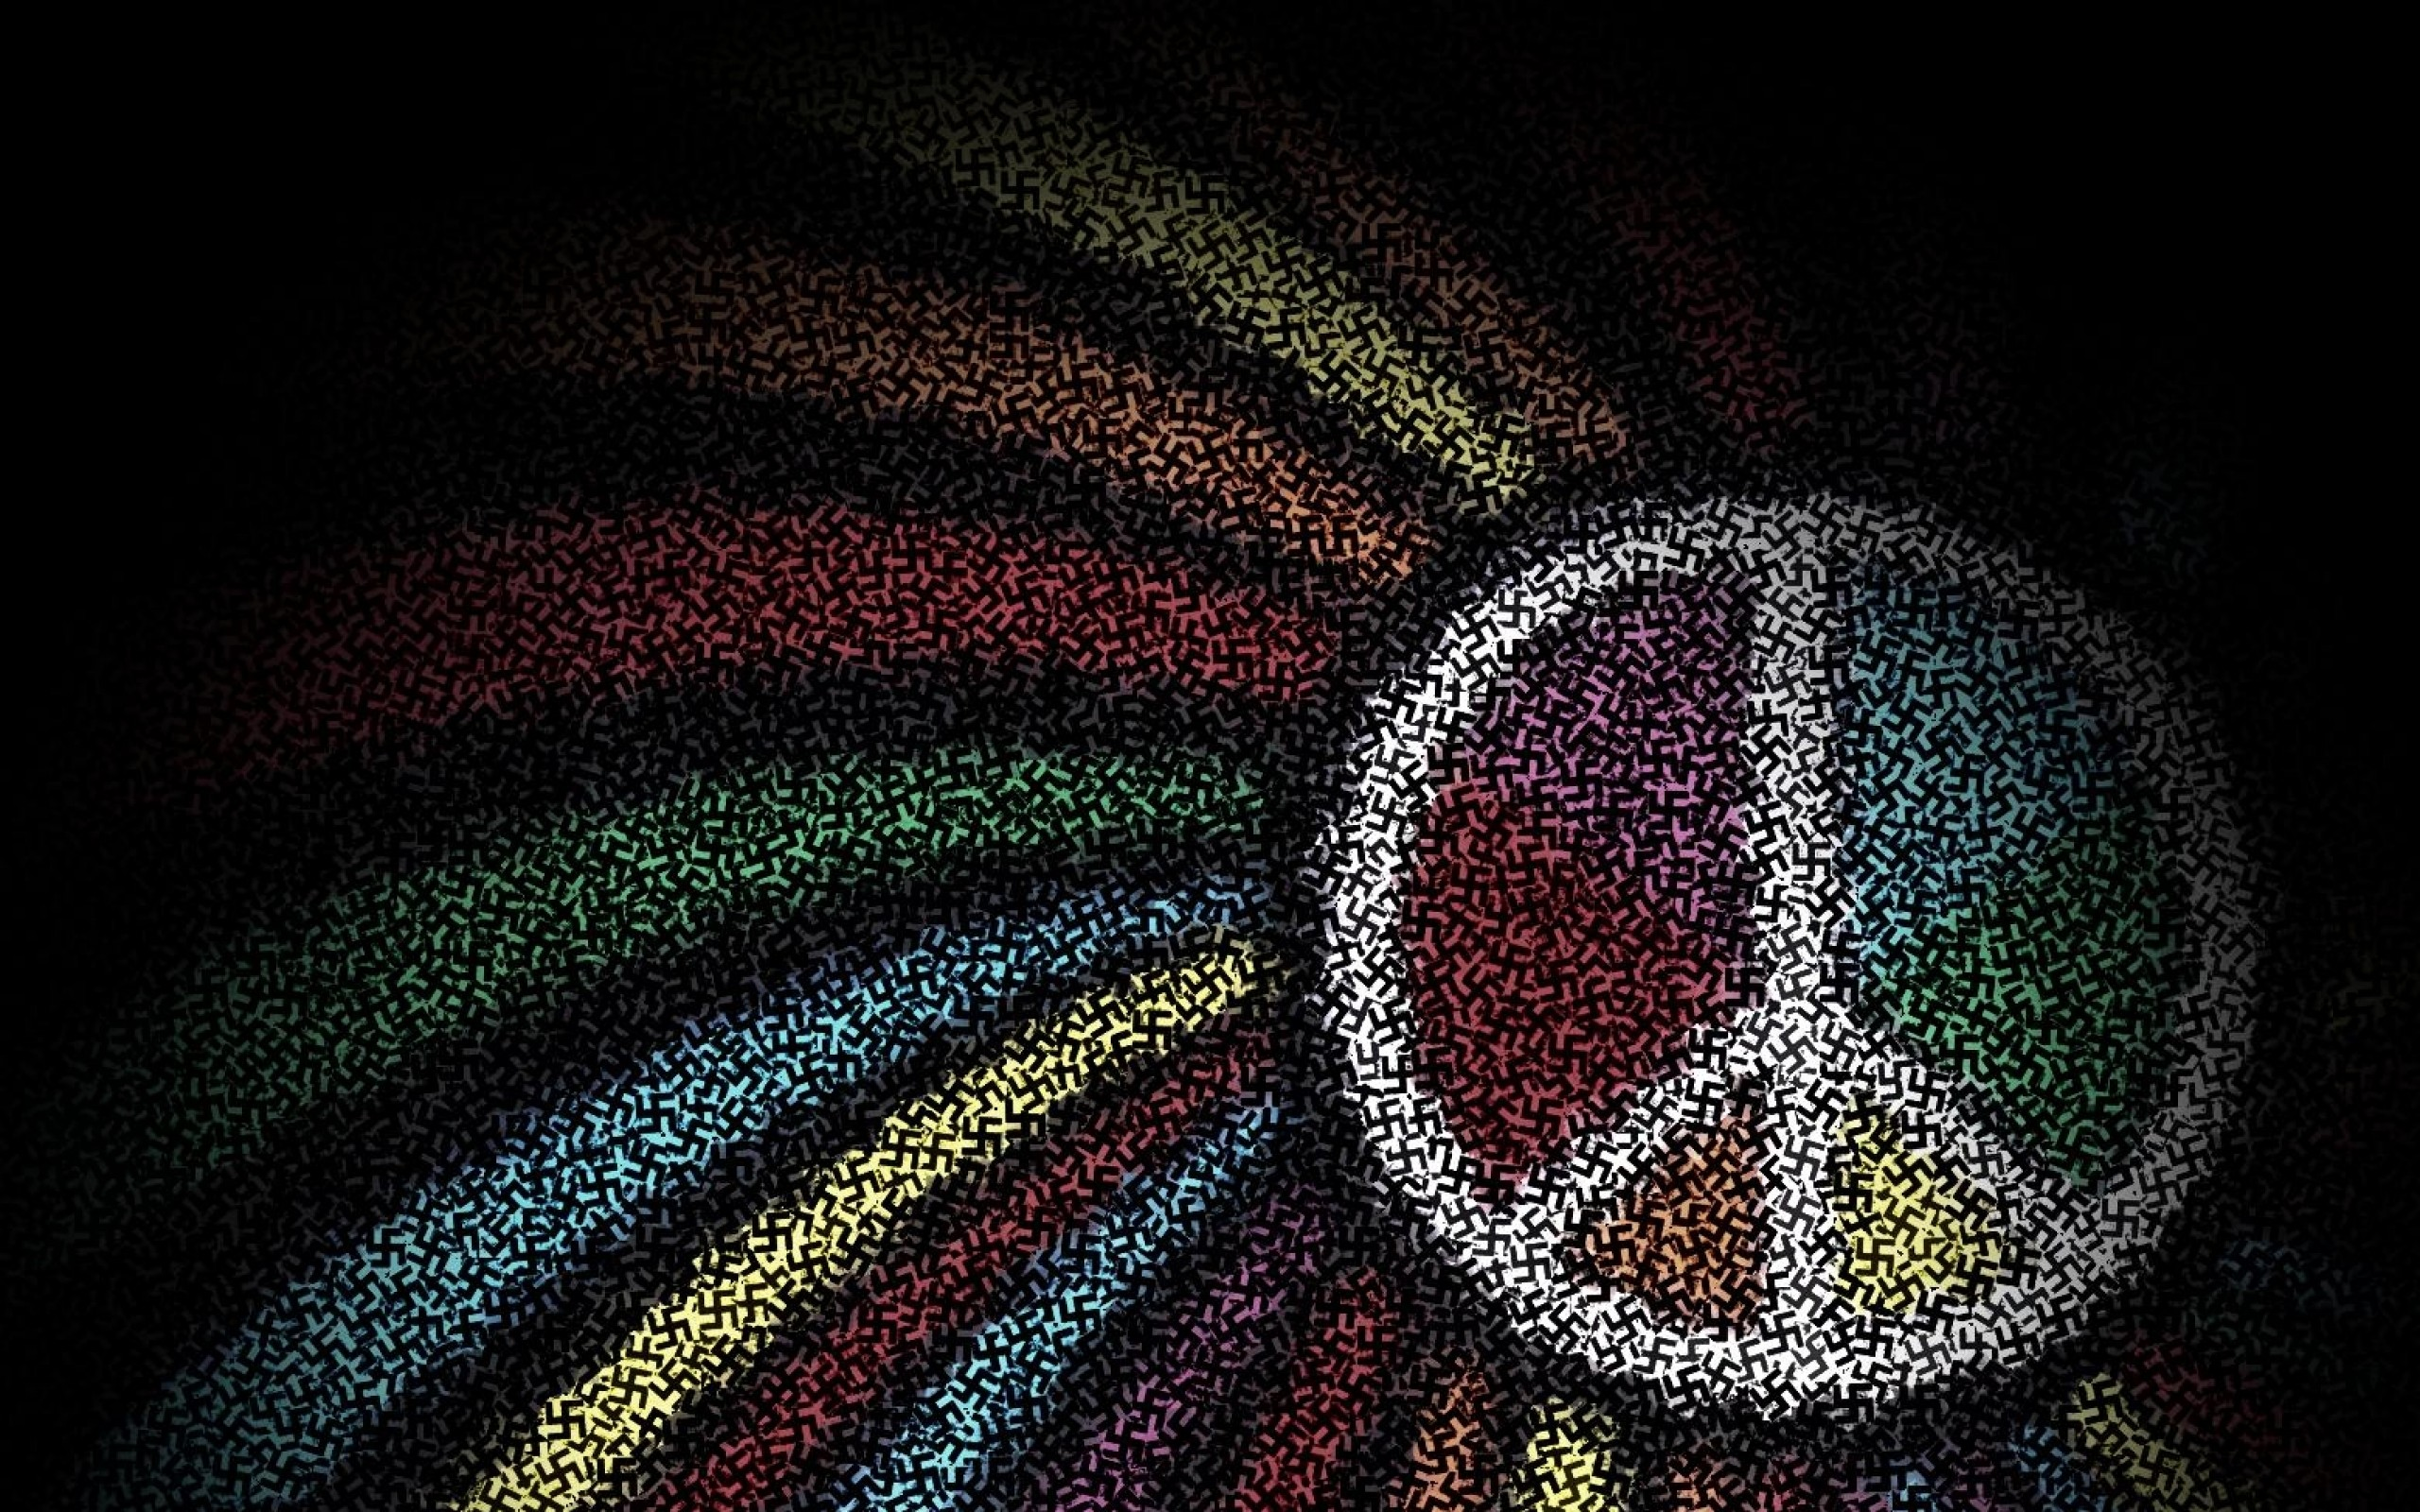 colorful peace sign backgrounds 183��